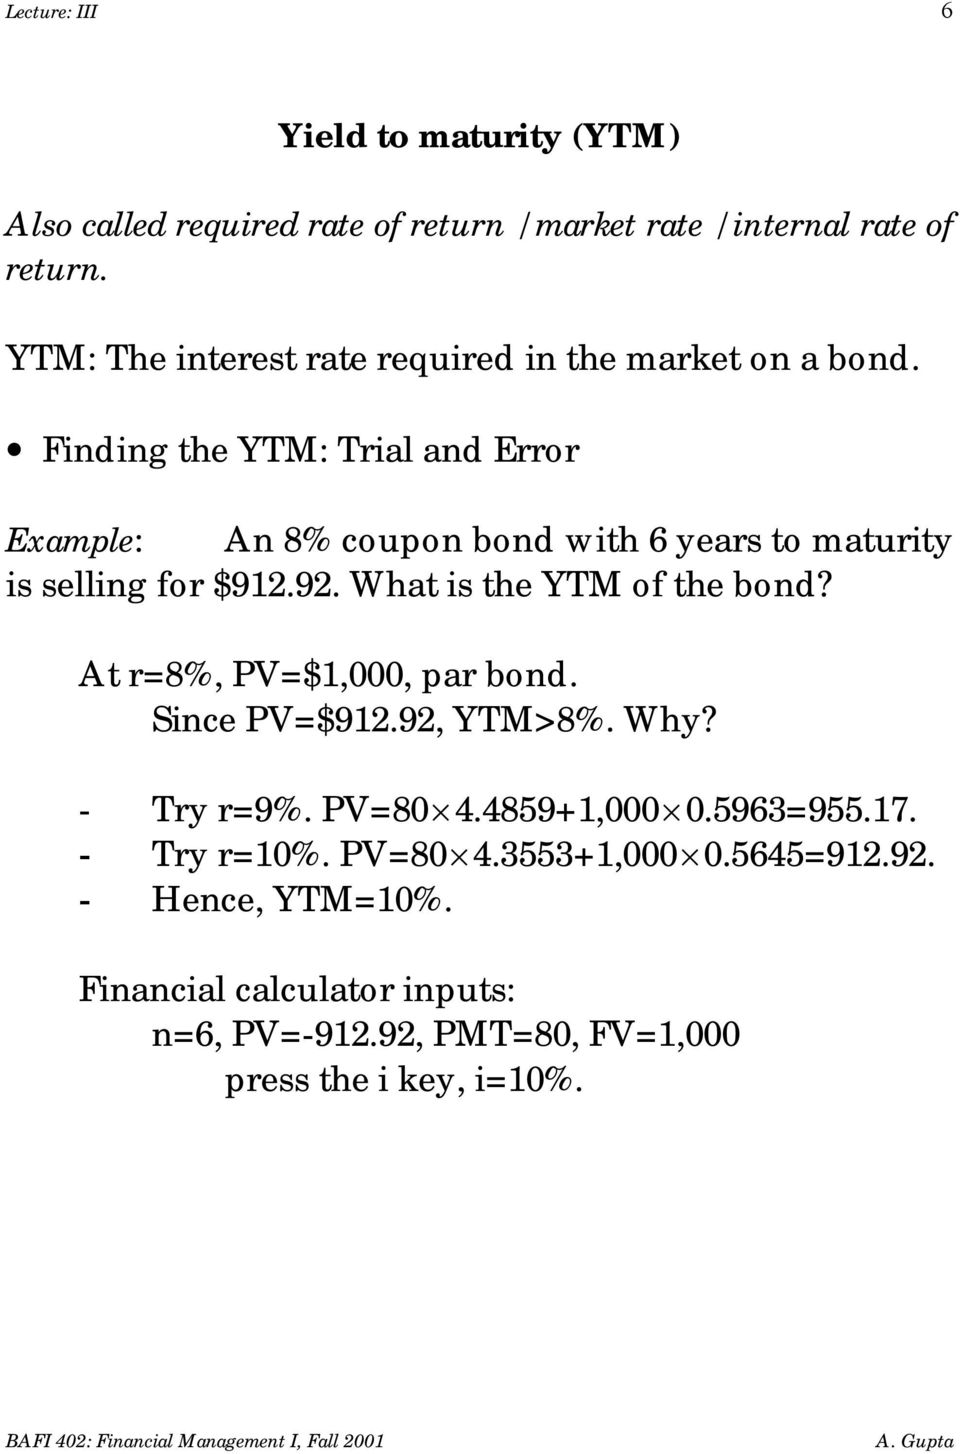 Finding the YTM: Trial and Error Example: An 8% coupon bond with 6 years to maturity is selling for $912.92. What is the YTM of the bond?